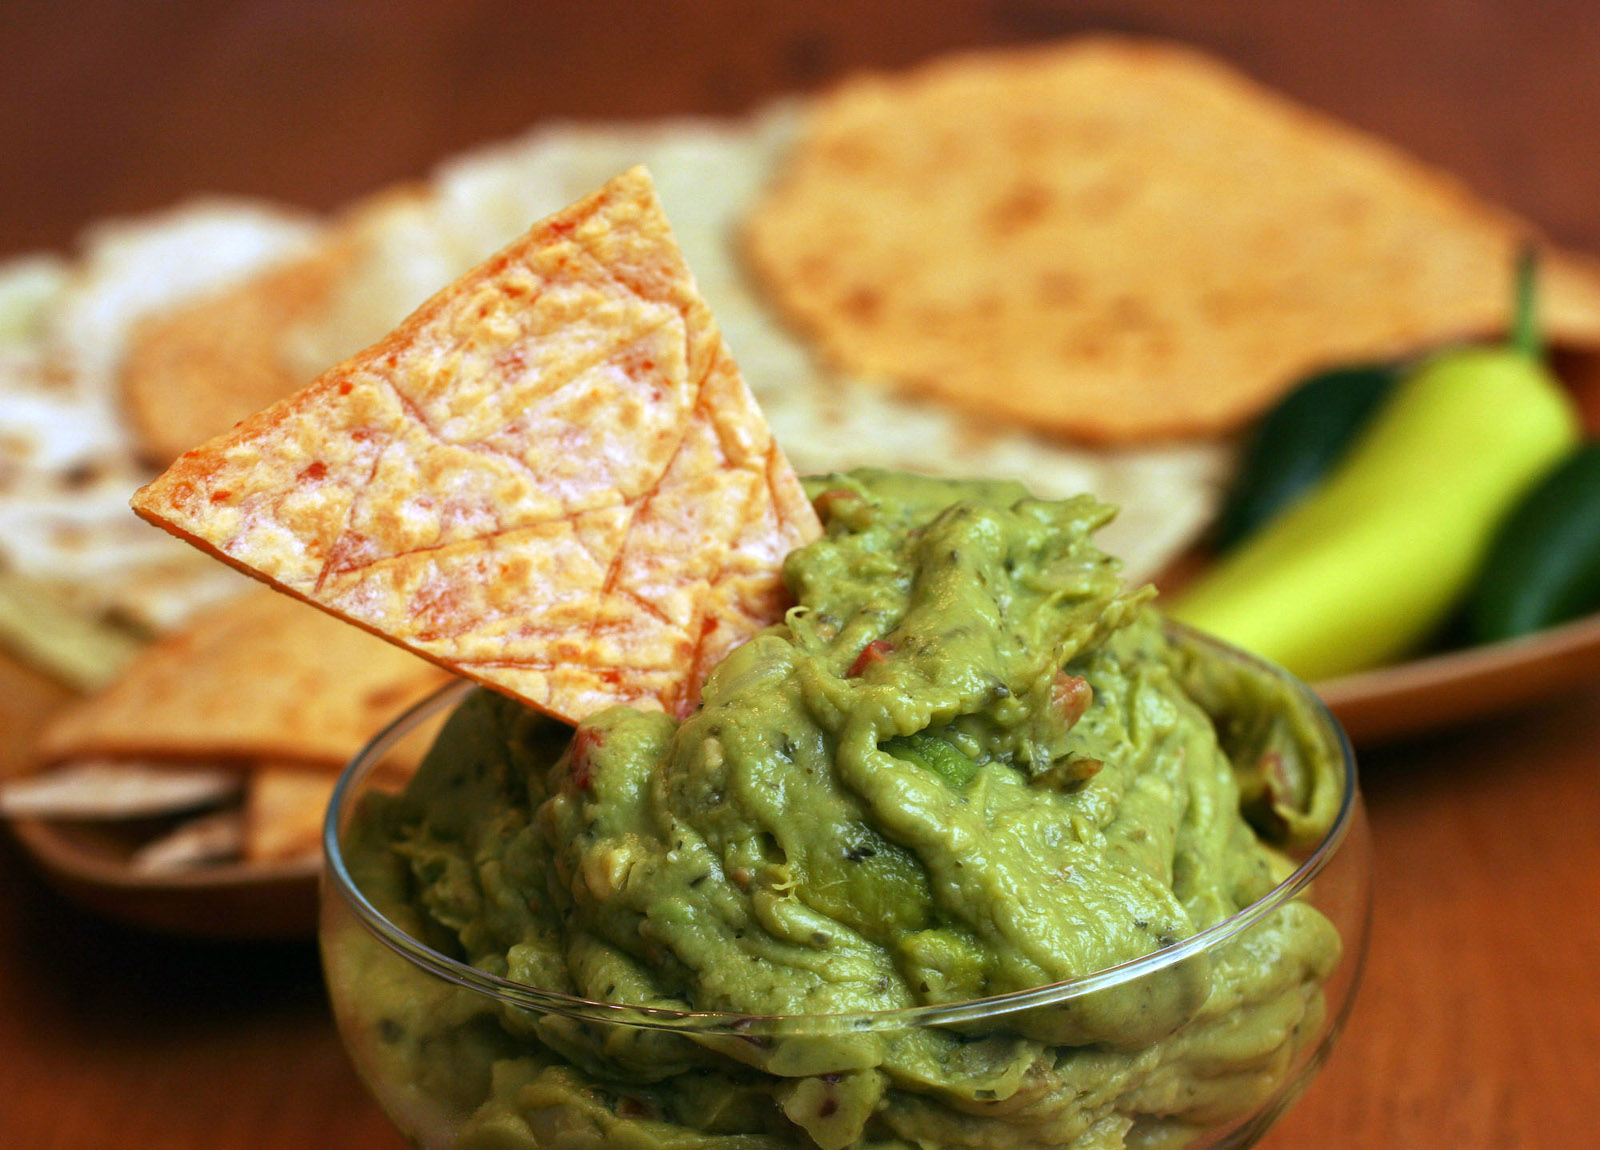 ** FOR USE WITH AP LIFESTYLES ** Homemade tortillas and guacamole are shown in this July 5, 2007 photo.  Homemade tortillas hot off the griddle taste great, are easy to make and can be tweaked to your particular tastes. (AP Photo/Larry Crowe)